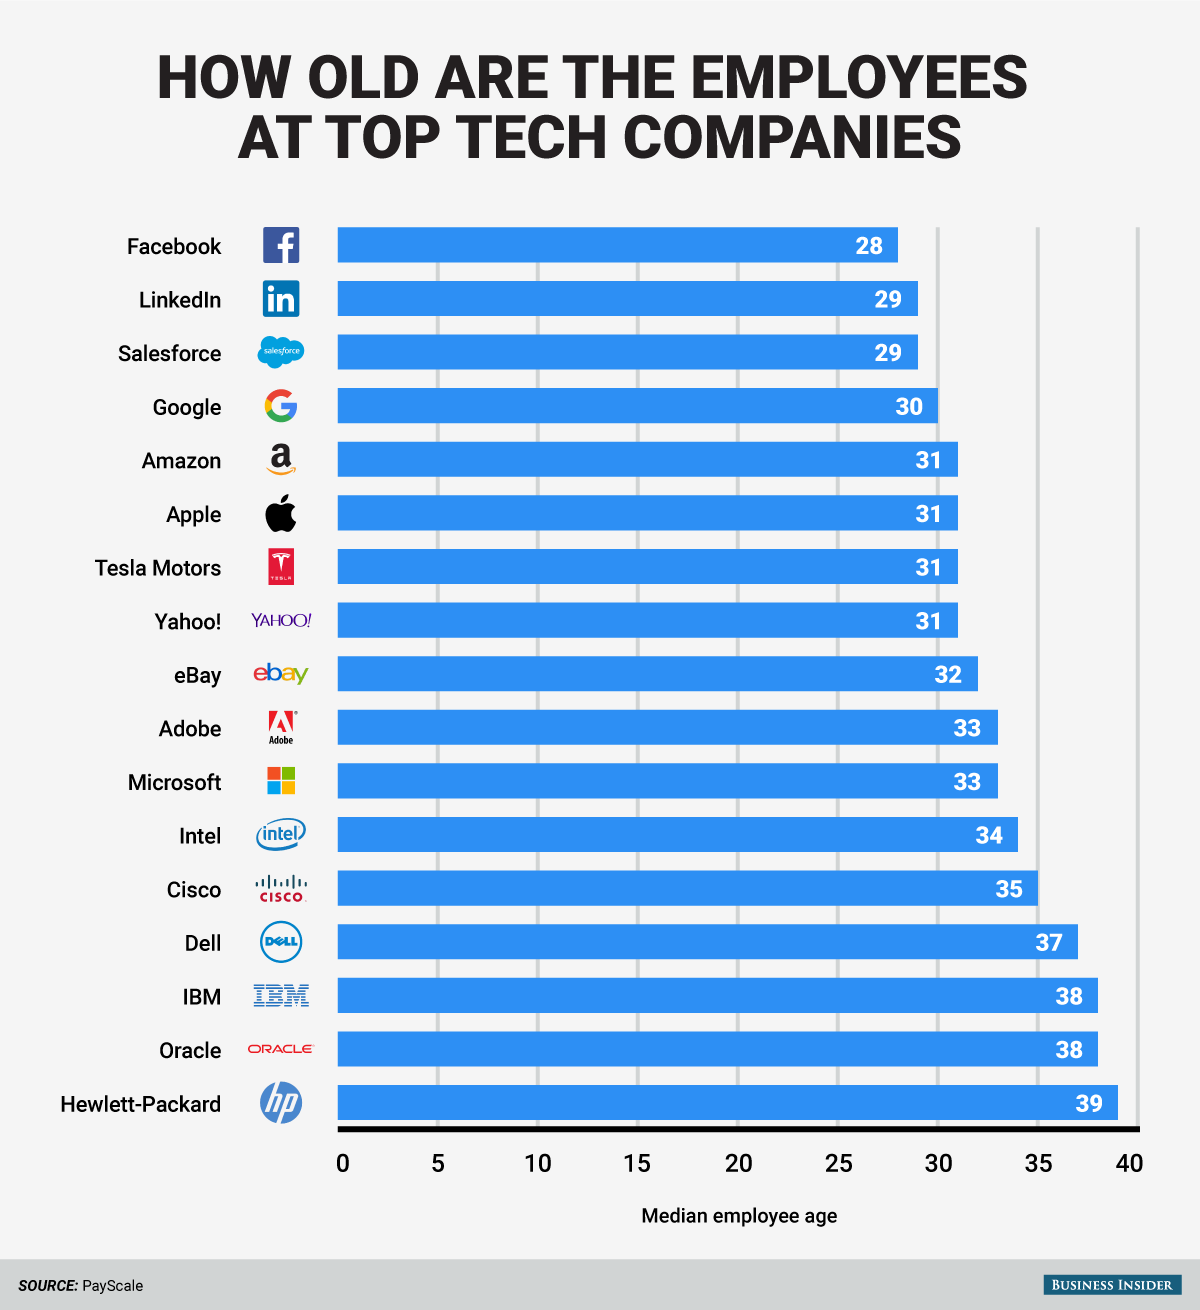 bi_graphics_how-old-are-the-employees-at-top-tech-companies-1